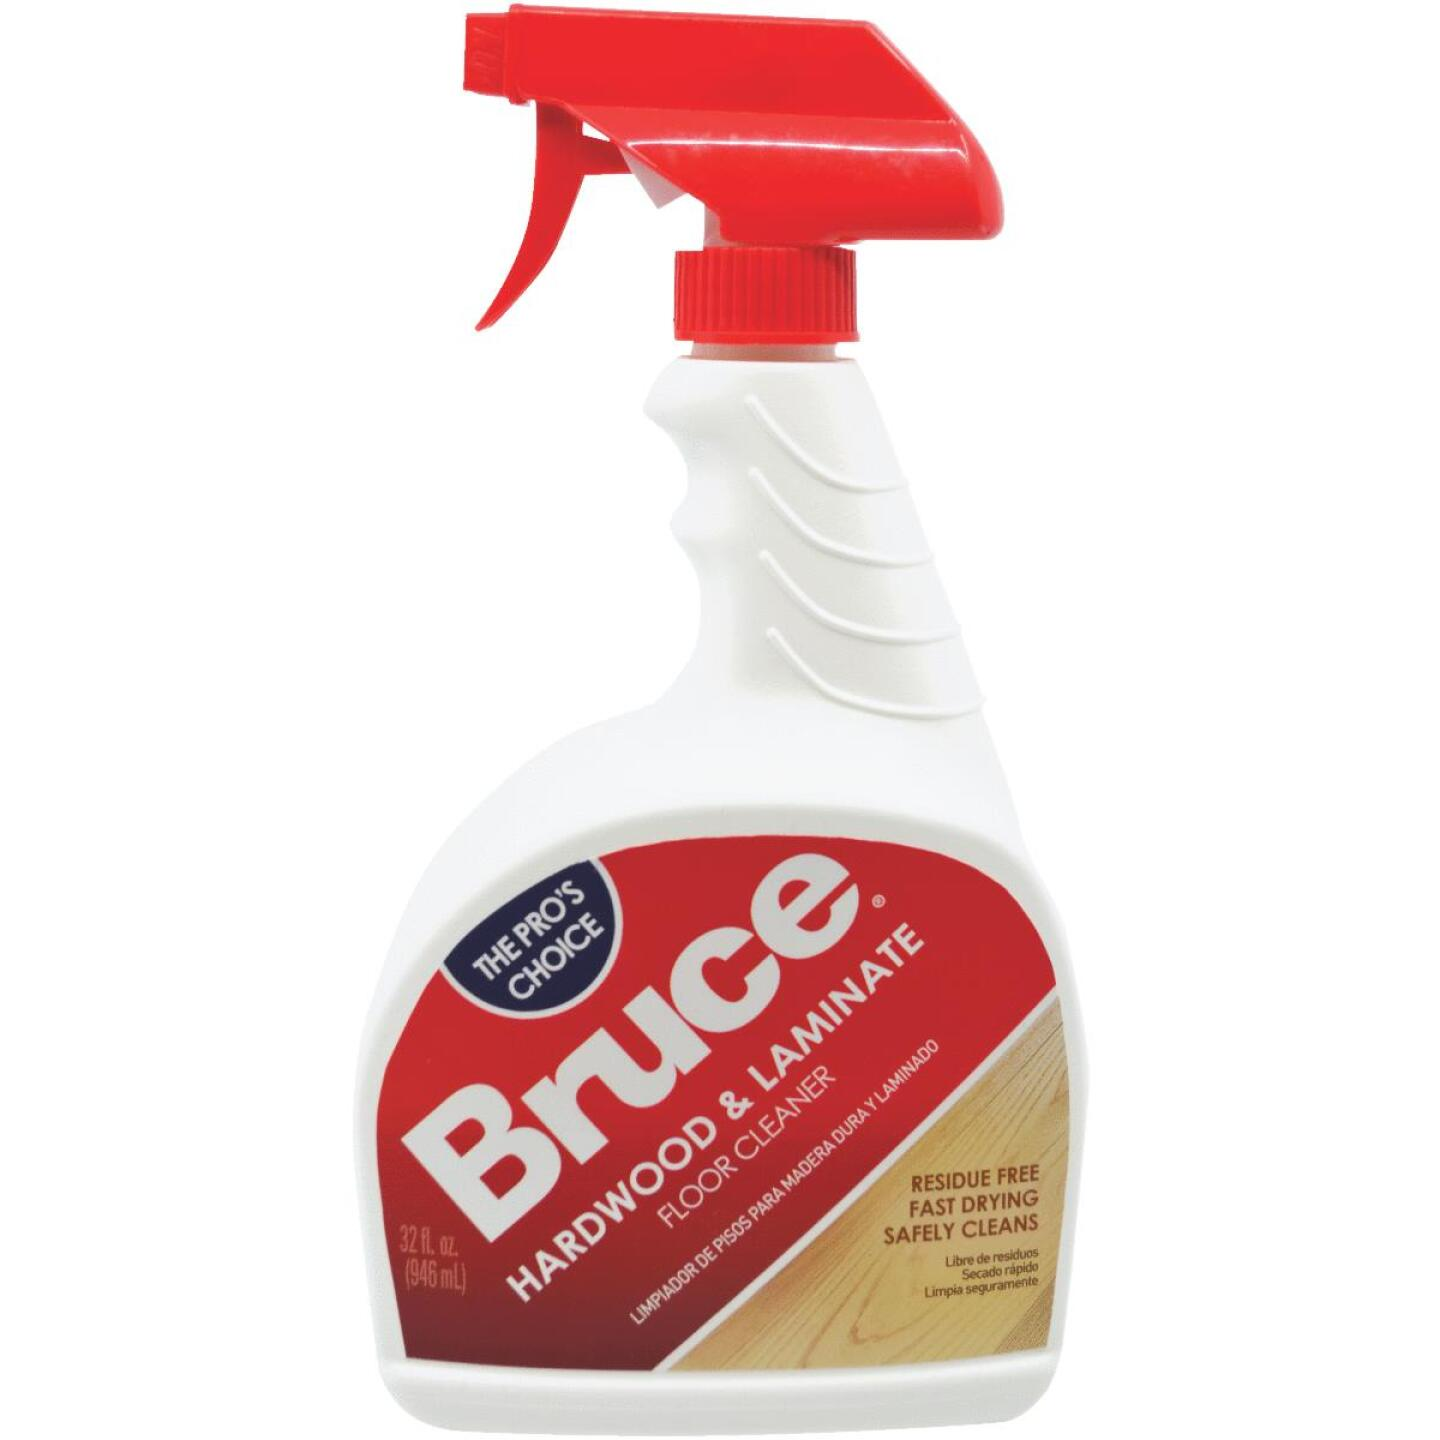 Bruce 32 Oz. Hardwood & Laminate Floor Cleaner Image 1